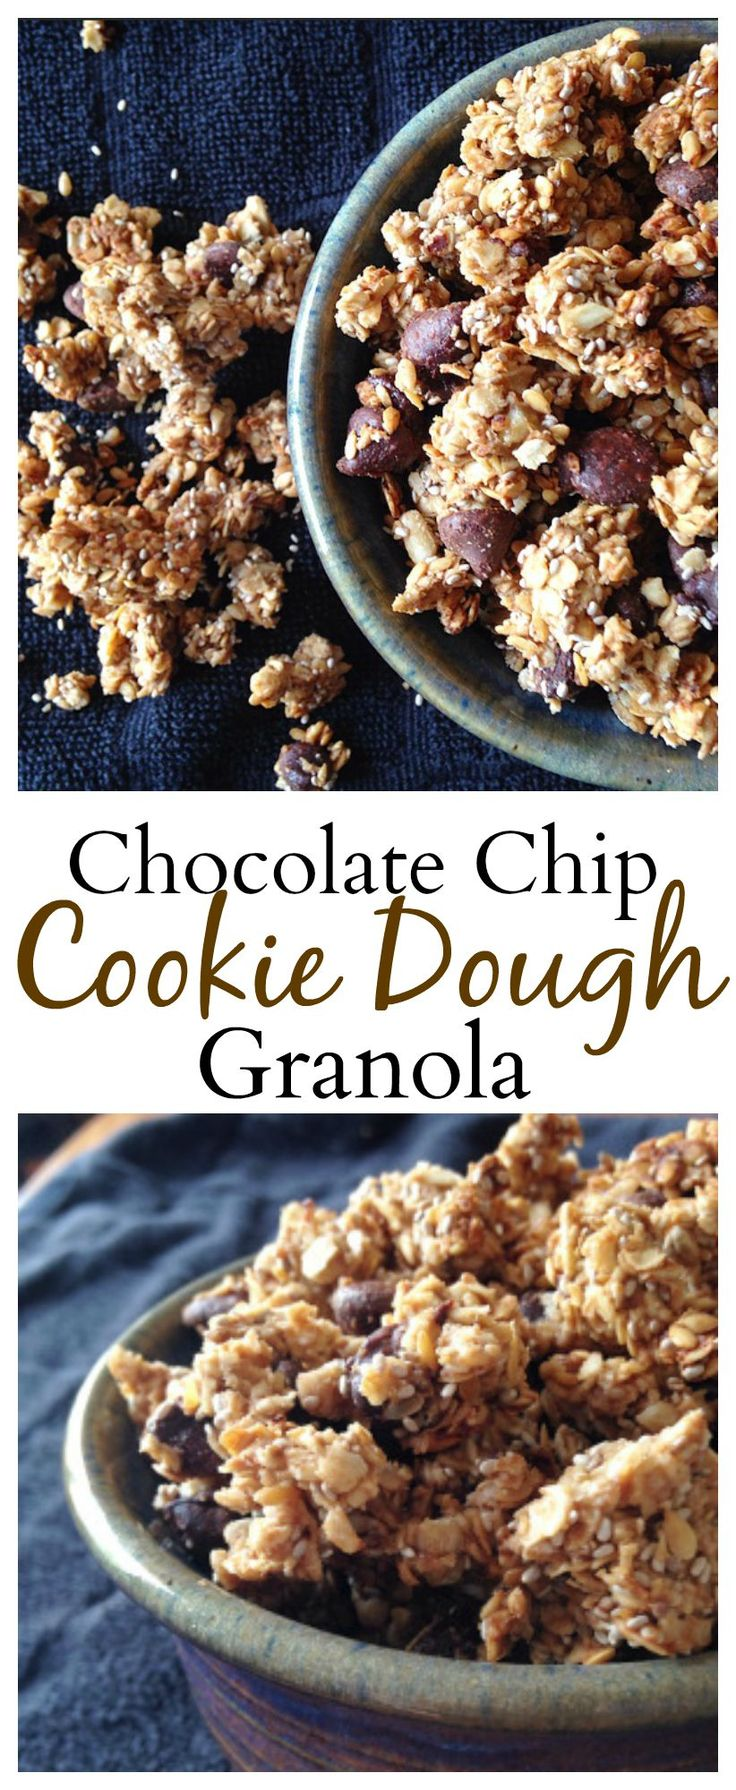 Chocolate Chip Cookie Dough Granola is the best granola you will ever taste!